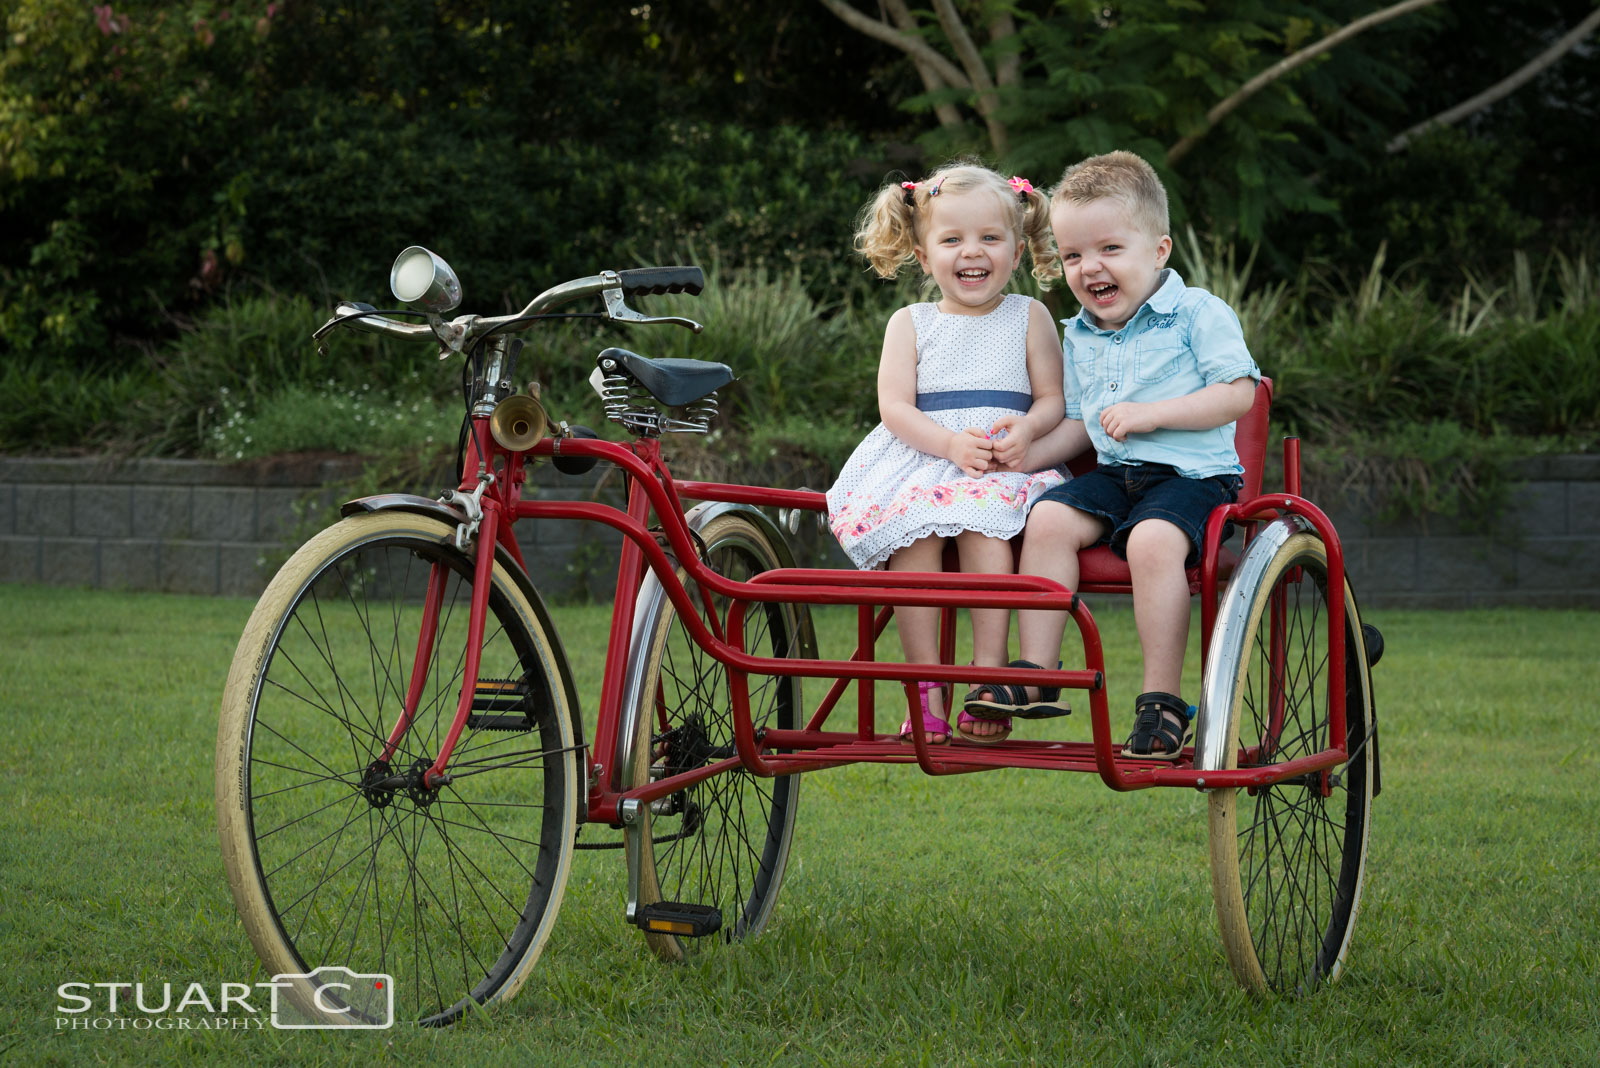 Siblings, children, kids sitting on vintage push bike with side car